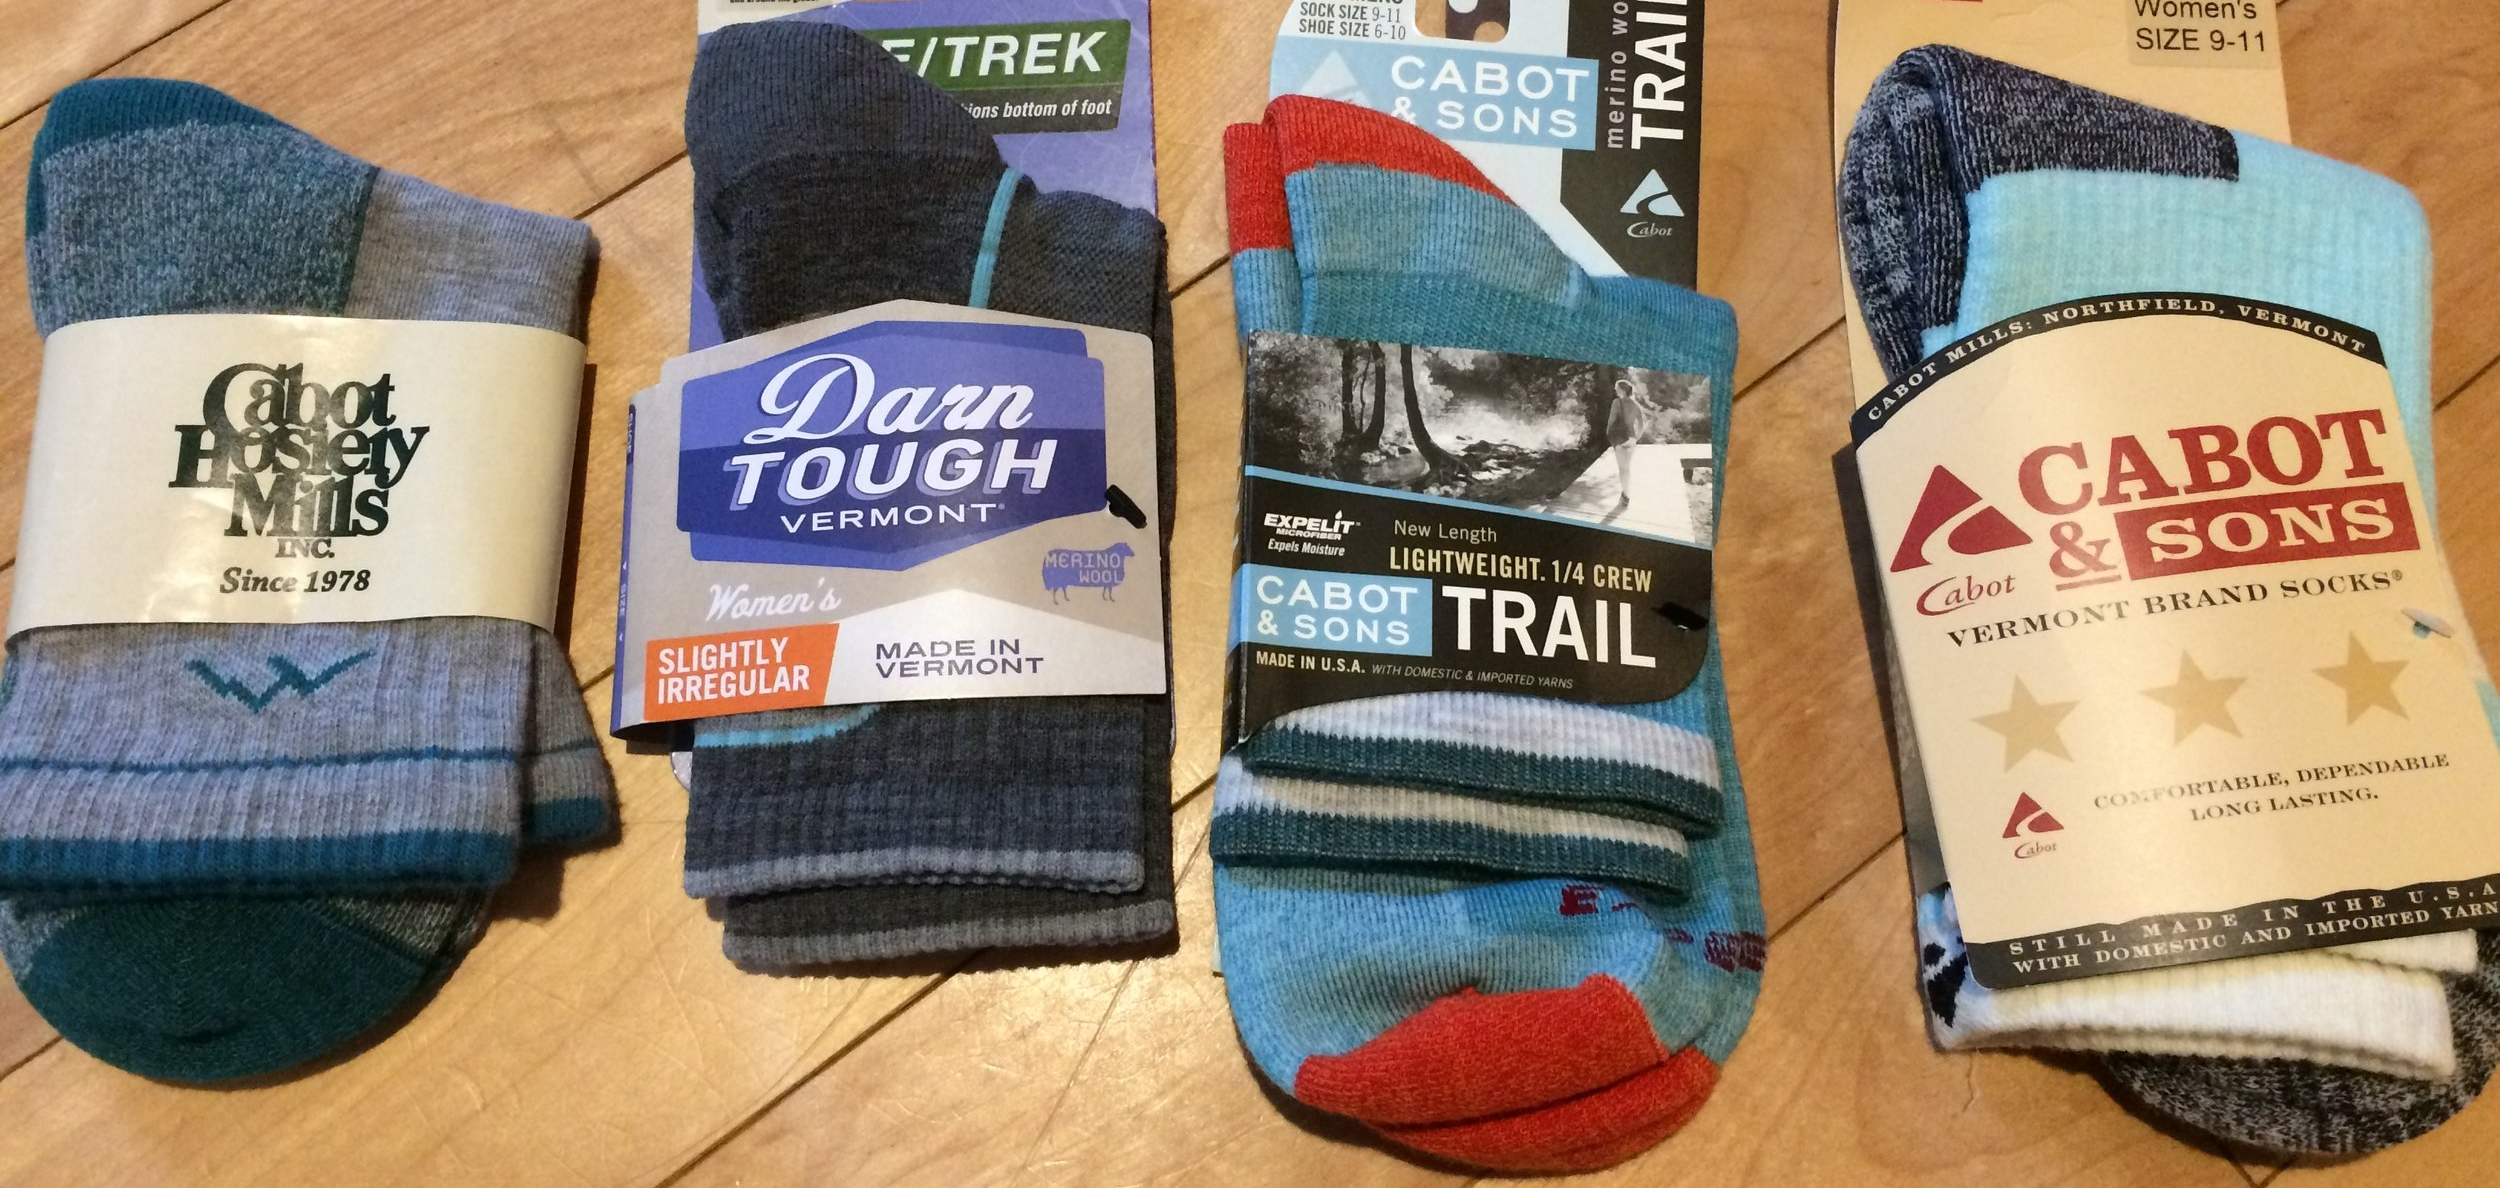 My purchases at the sock sale this year